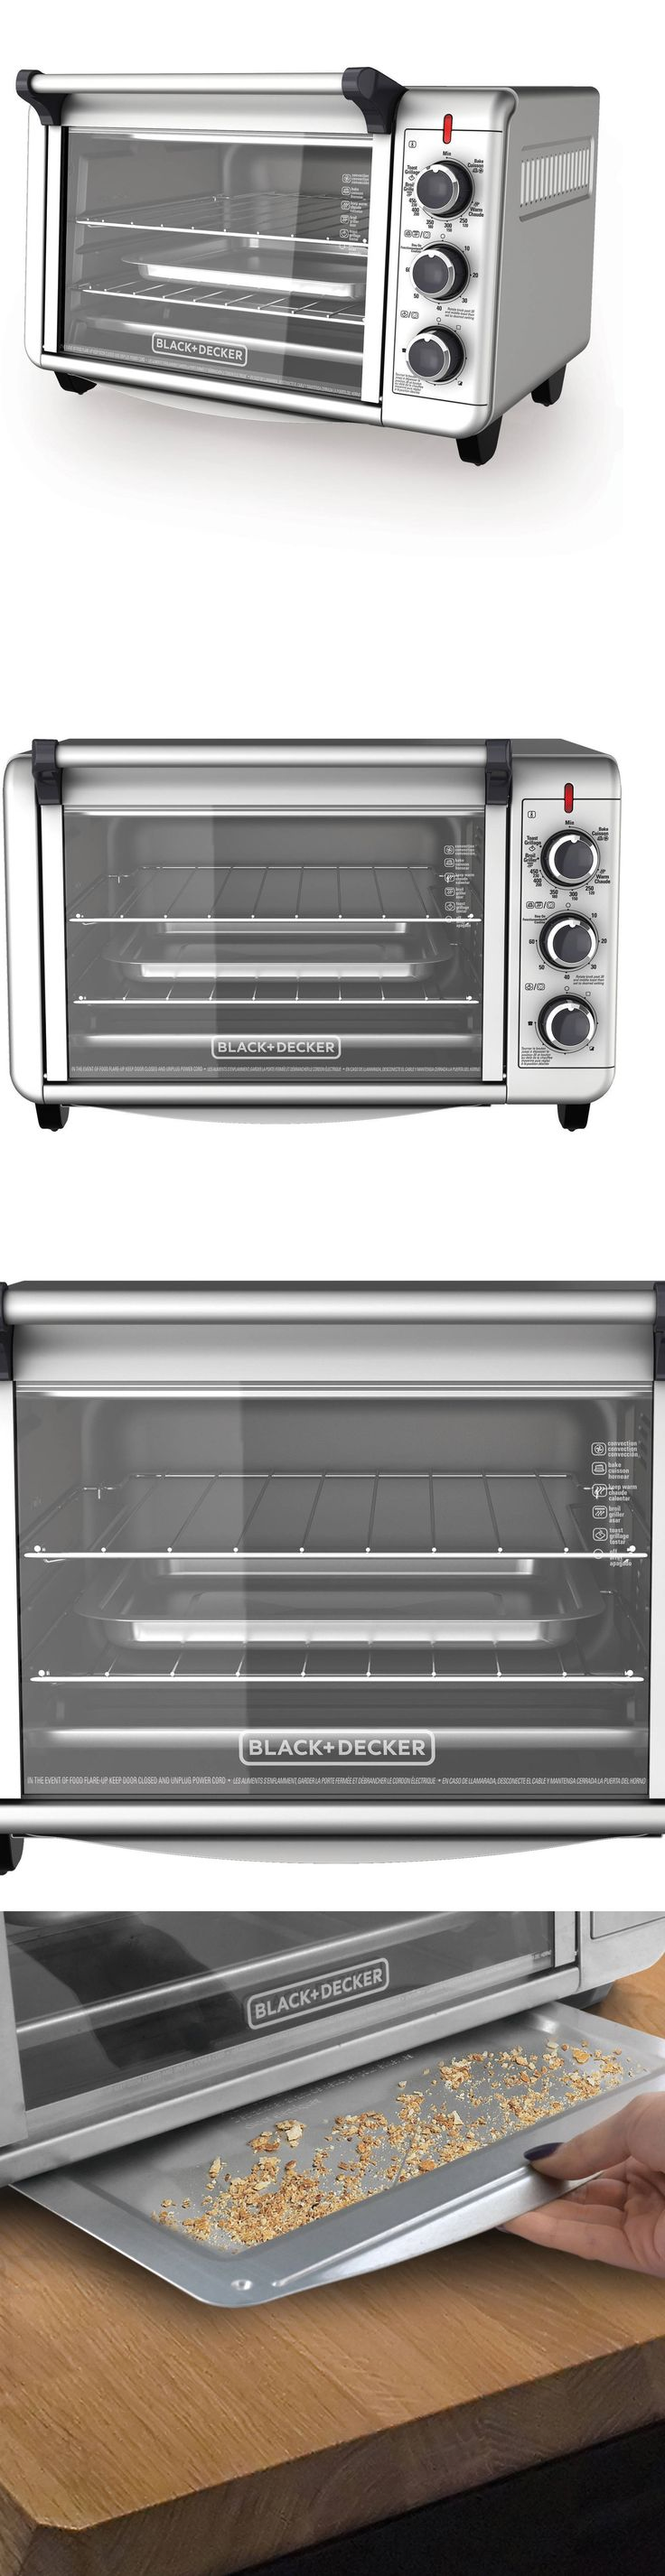 Toaster Ovens 122930: Electric Convection Oven Pizza Toaster Countertop Stainless Steel Black N Decker -> BUY IT NOW ONLY: $49.95 on eBay!